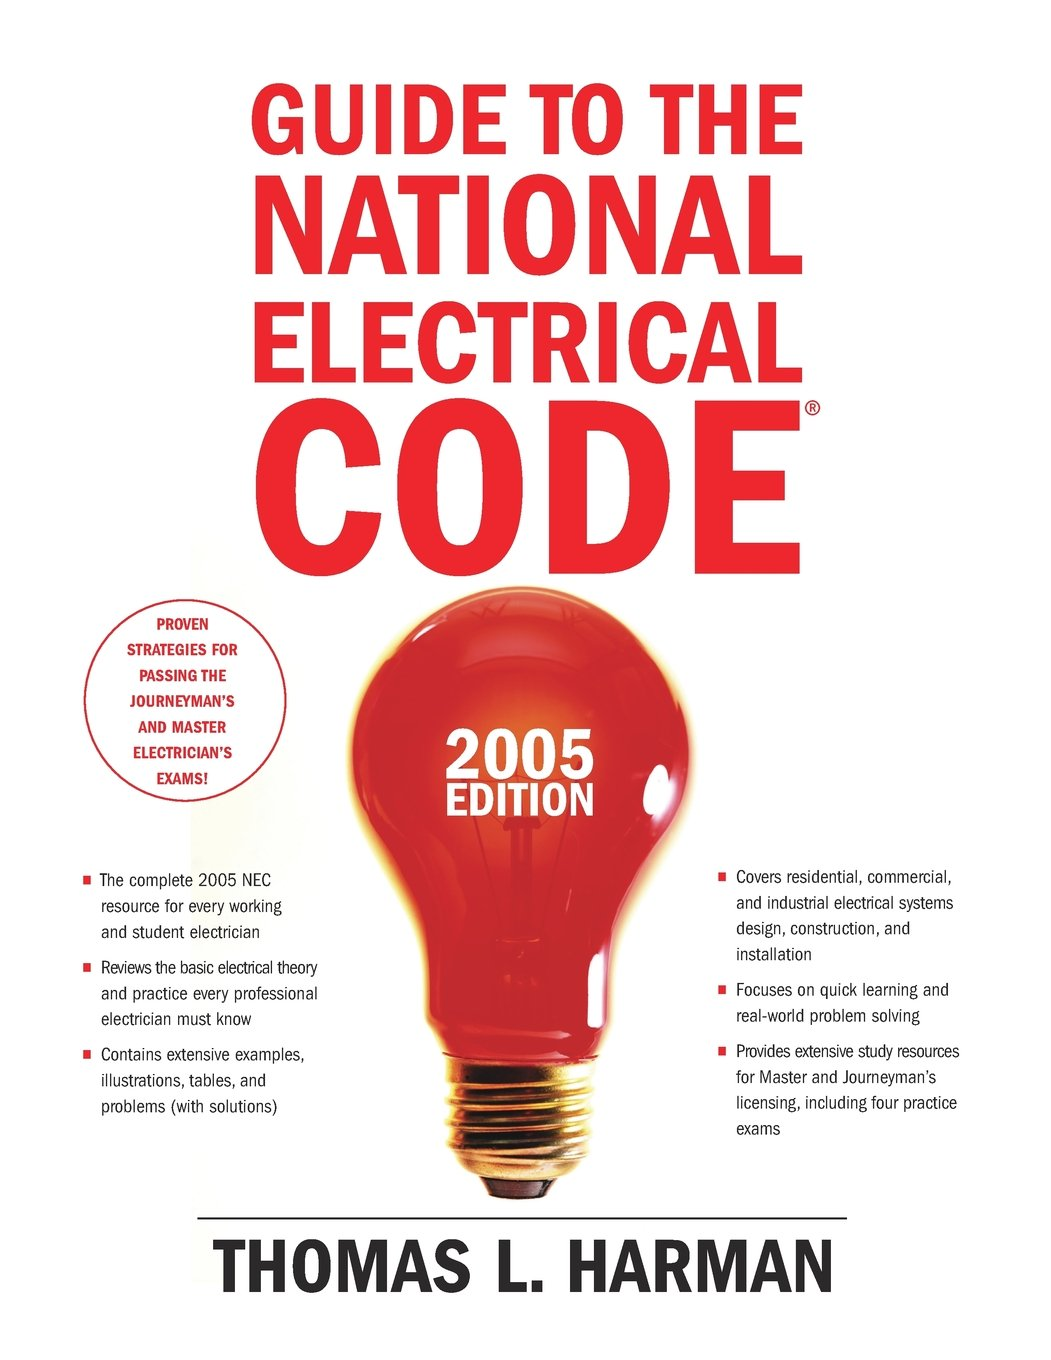 Guide to the National Electrical Code, 2005 Edition (10th Edition): Thomas  L. Harman: 9780131480025: Amazon.com: Books